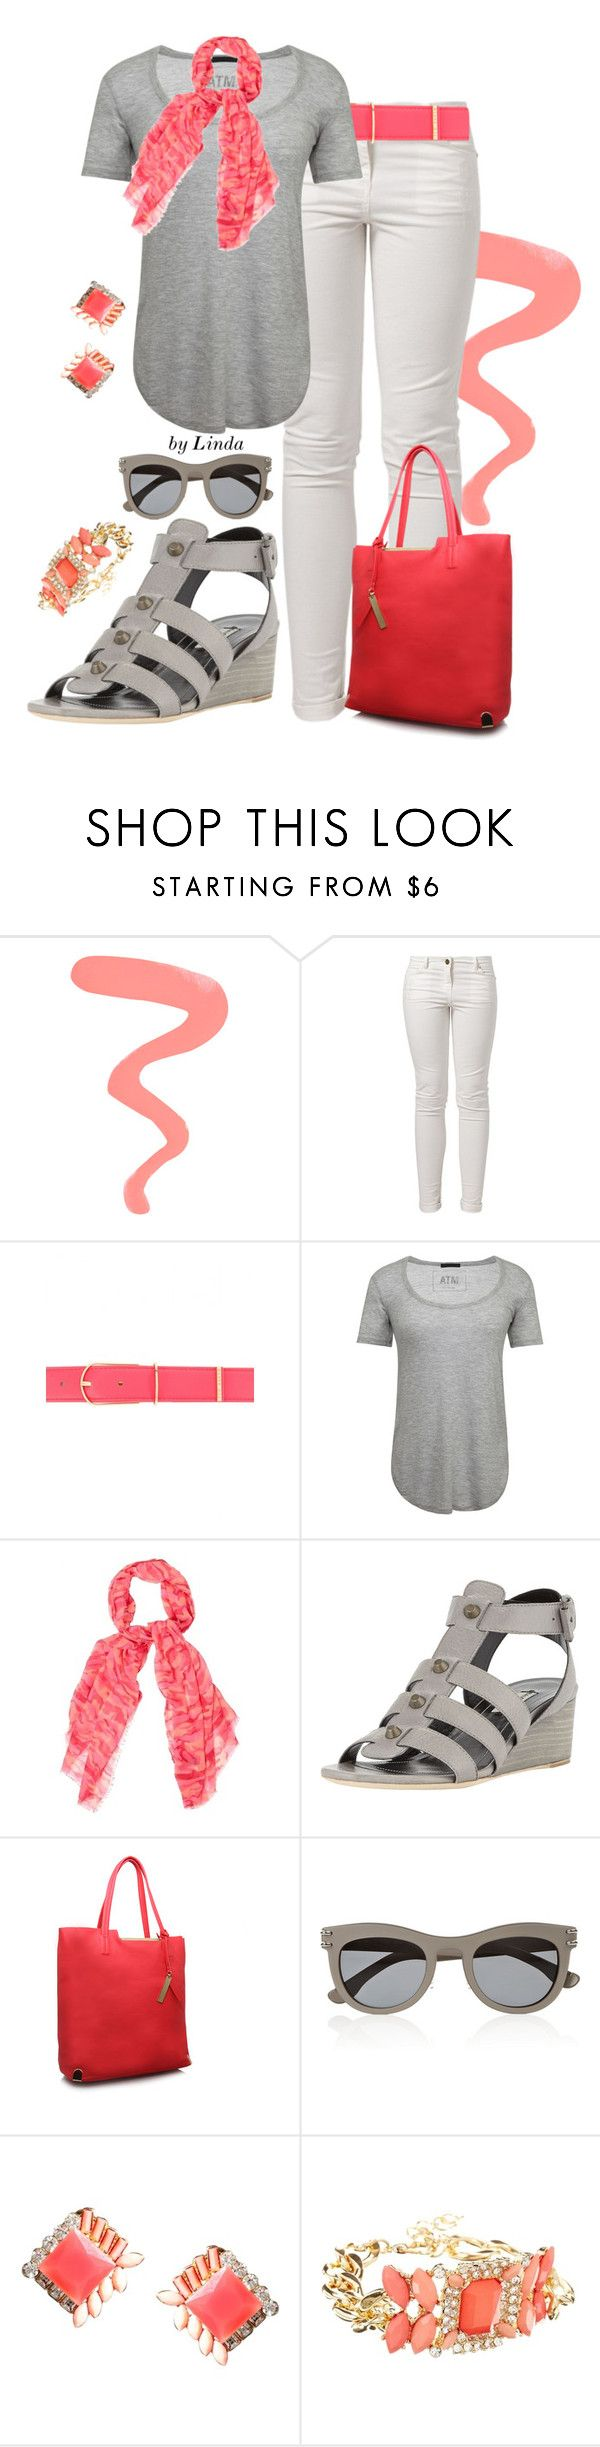 """""""Coral & Gray Spring Outfit"""" by lindakol ❤ liked on Polyvore featuring Topshop, Best Mountain, Ted Baker, ATM by Anthony Thomas Melillo, H! by Henry Holland, Balenciaga, Vince Camuto, Roland Mouret and DesignSix"""